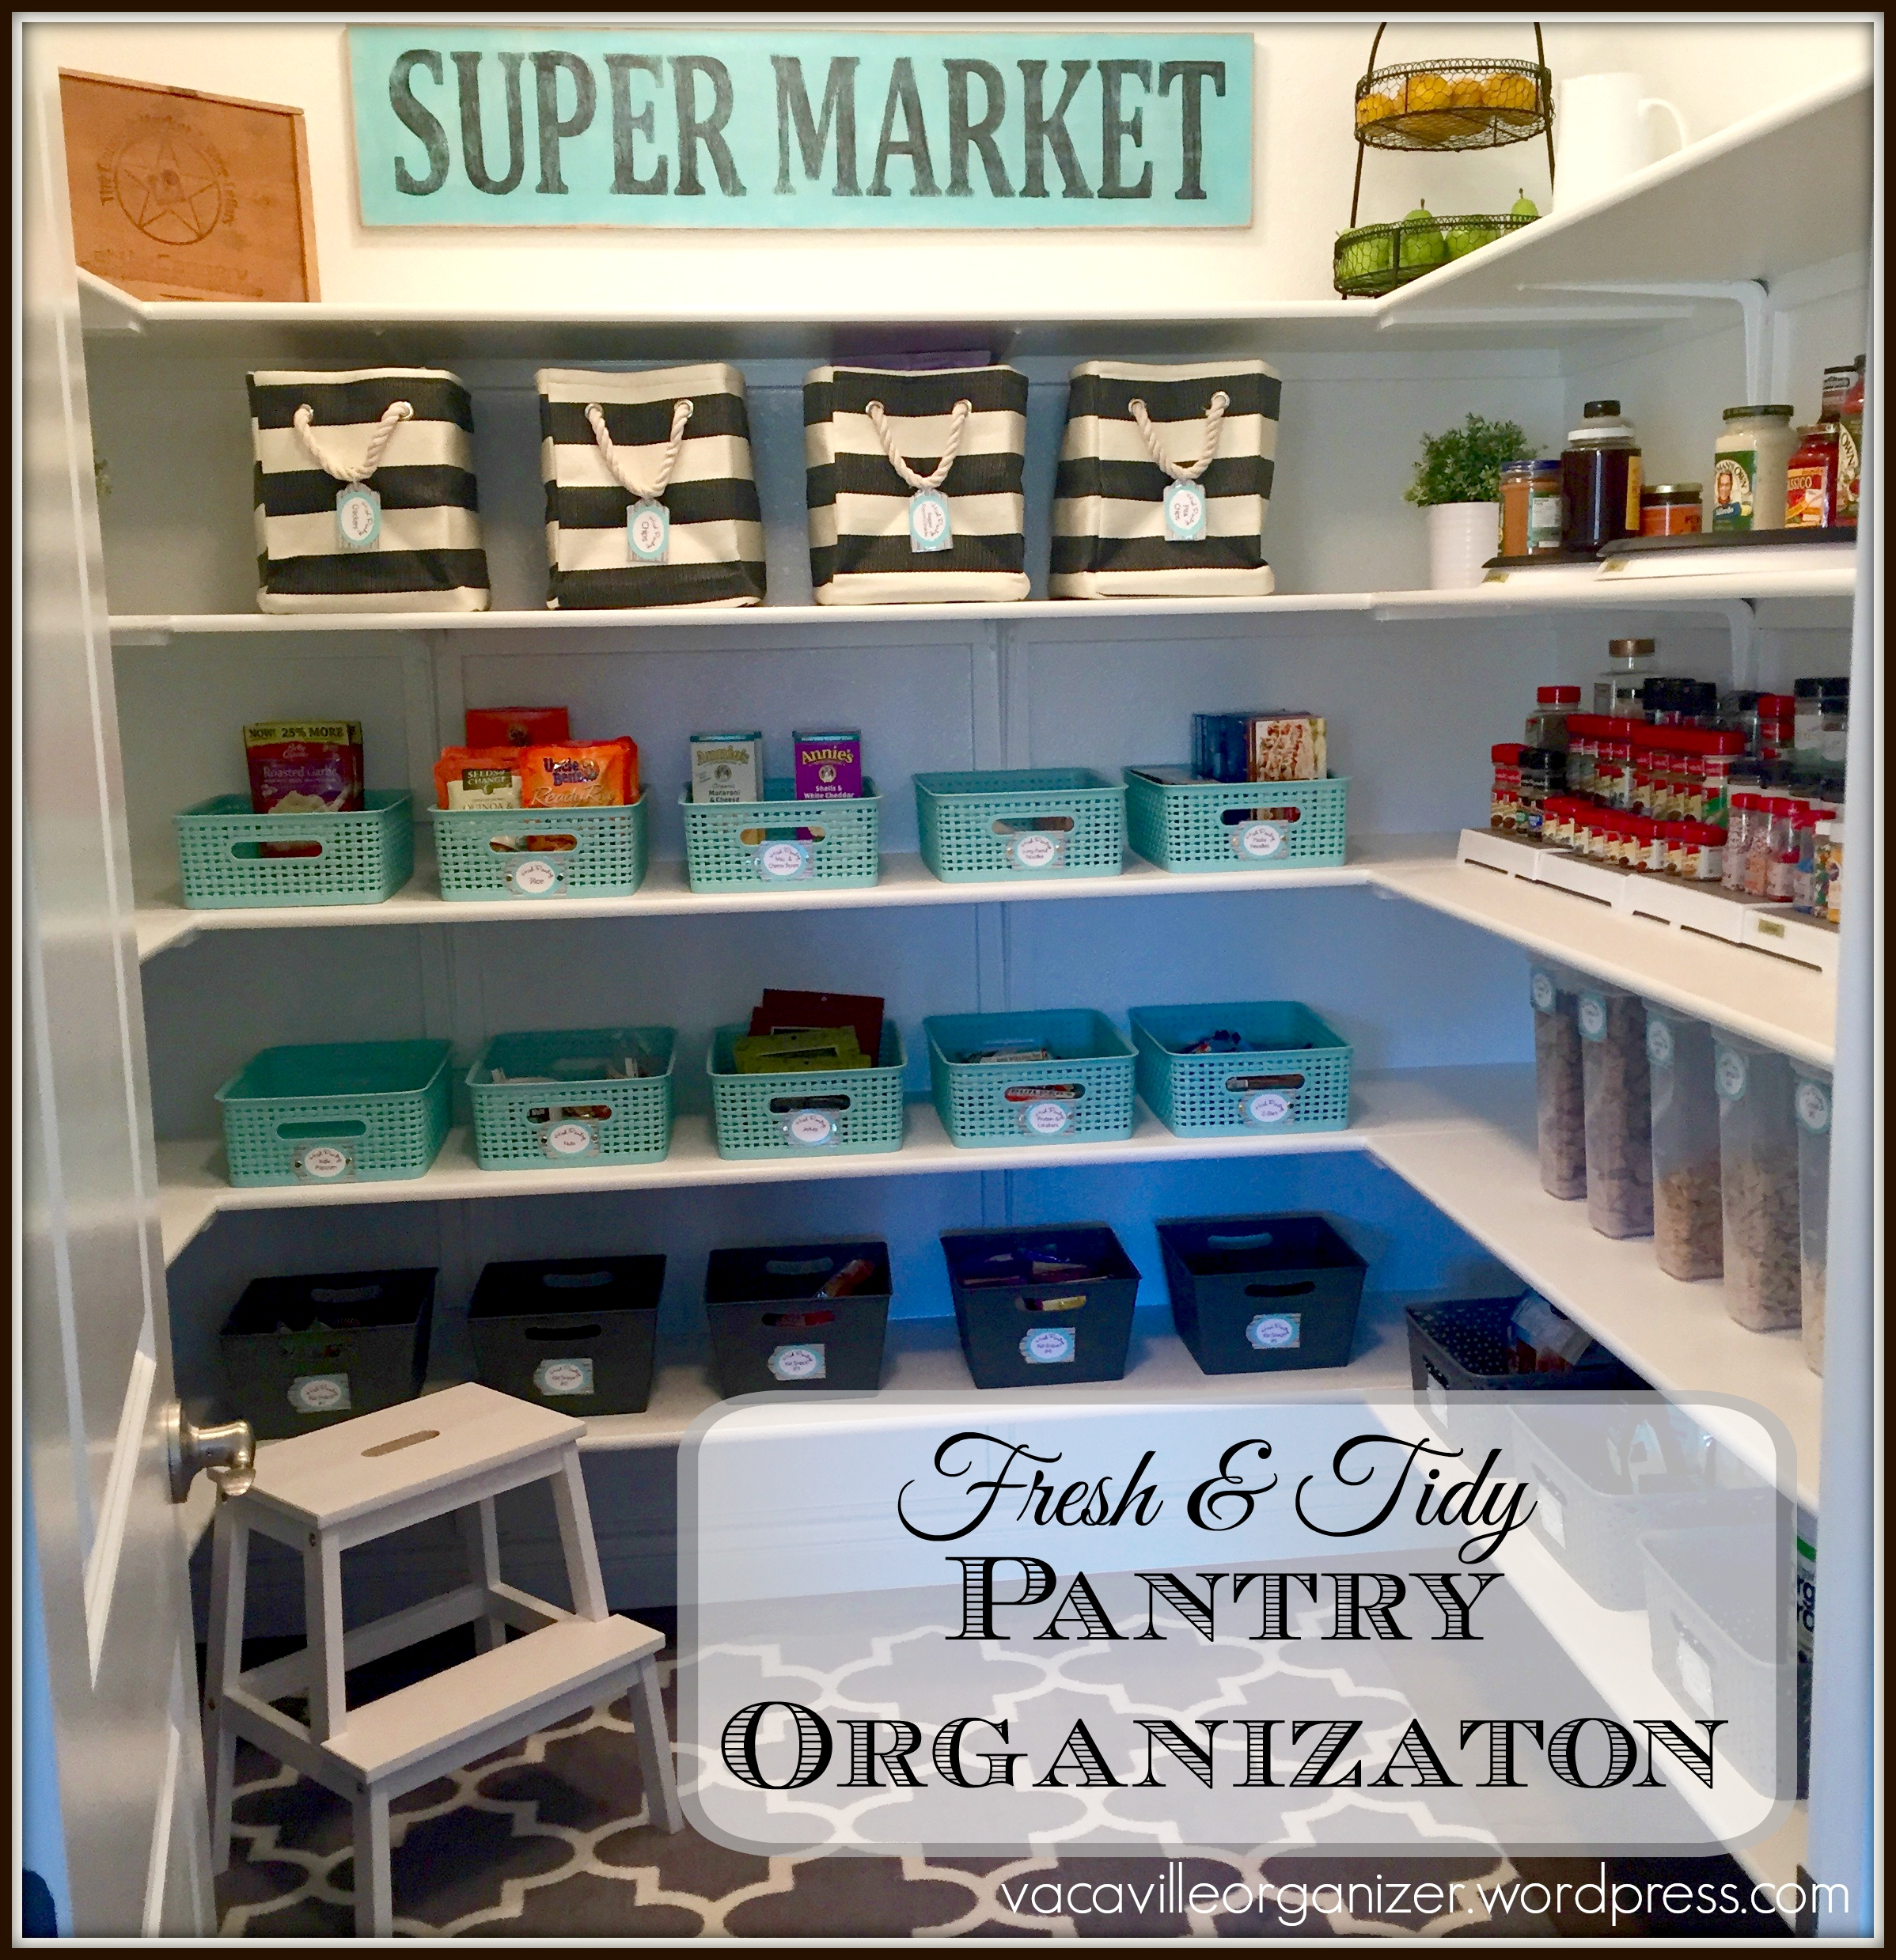 Fresh and Tidy Pantry Organization – Vacaville Organizer...the blog